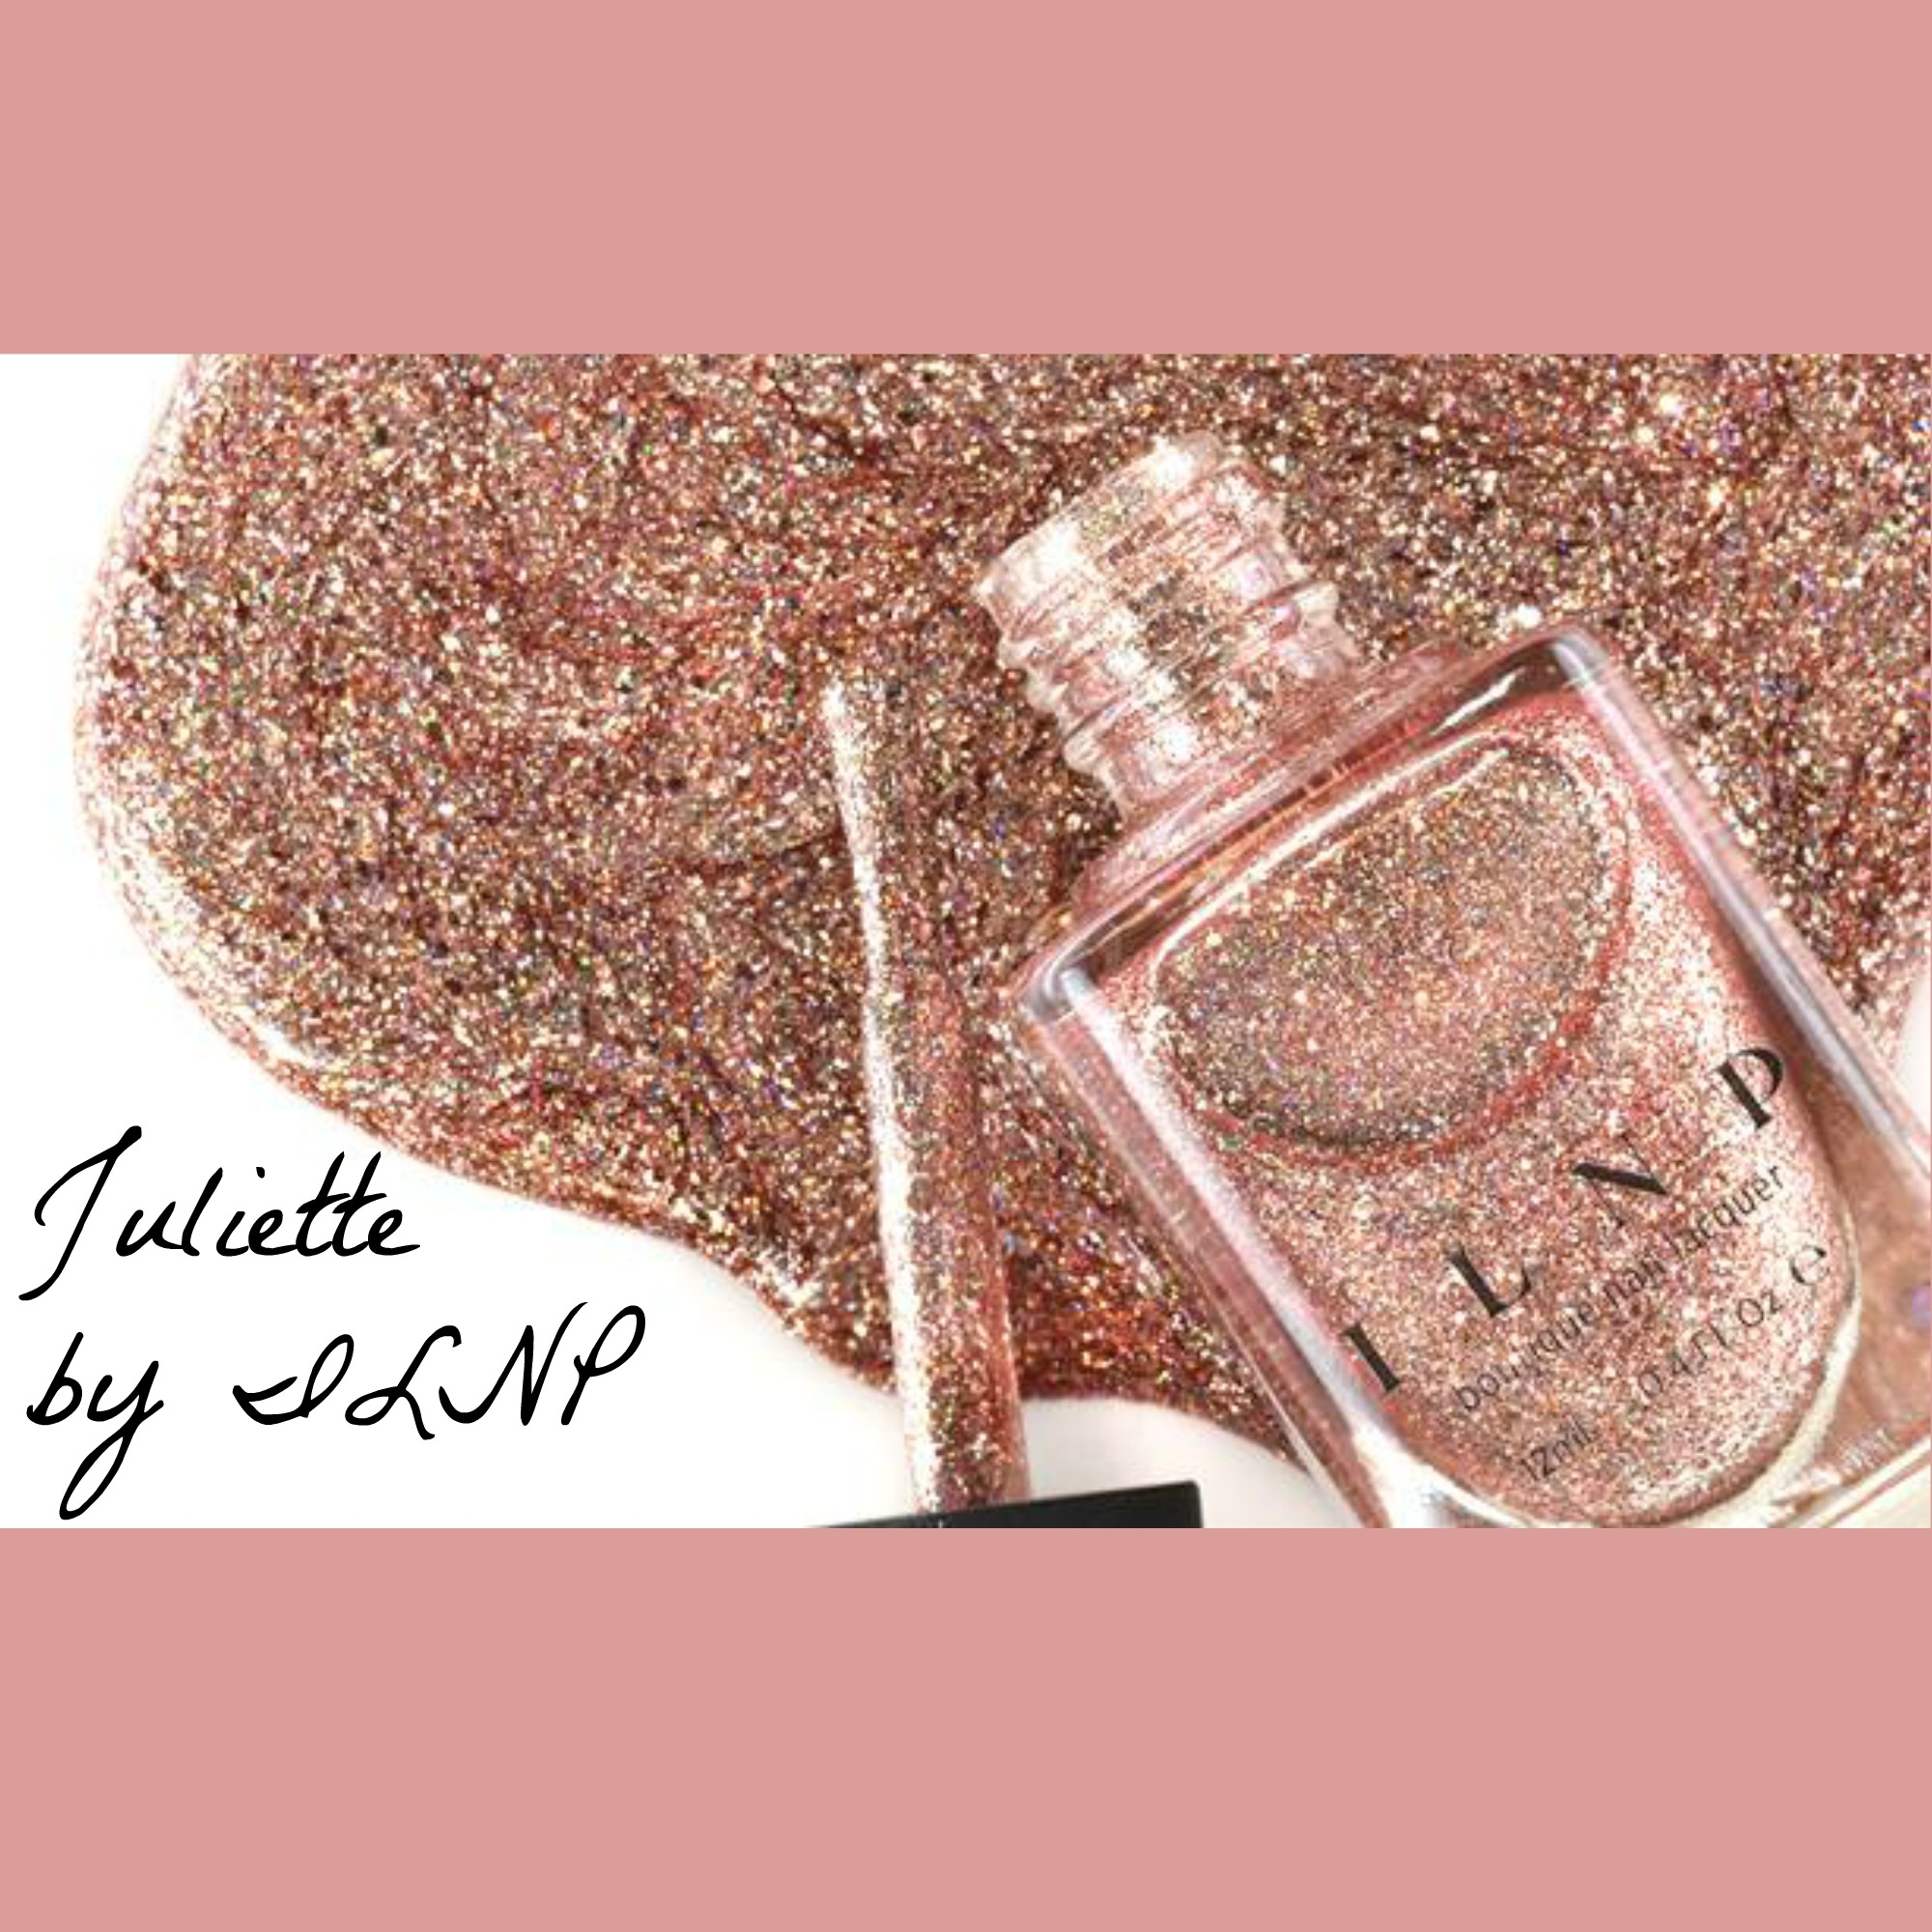 New ROSE GOLD Juliette ILNP (I Love Nail Polish) Coming soon! |